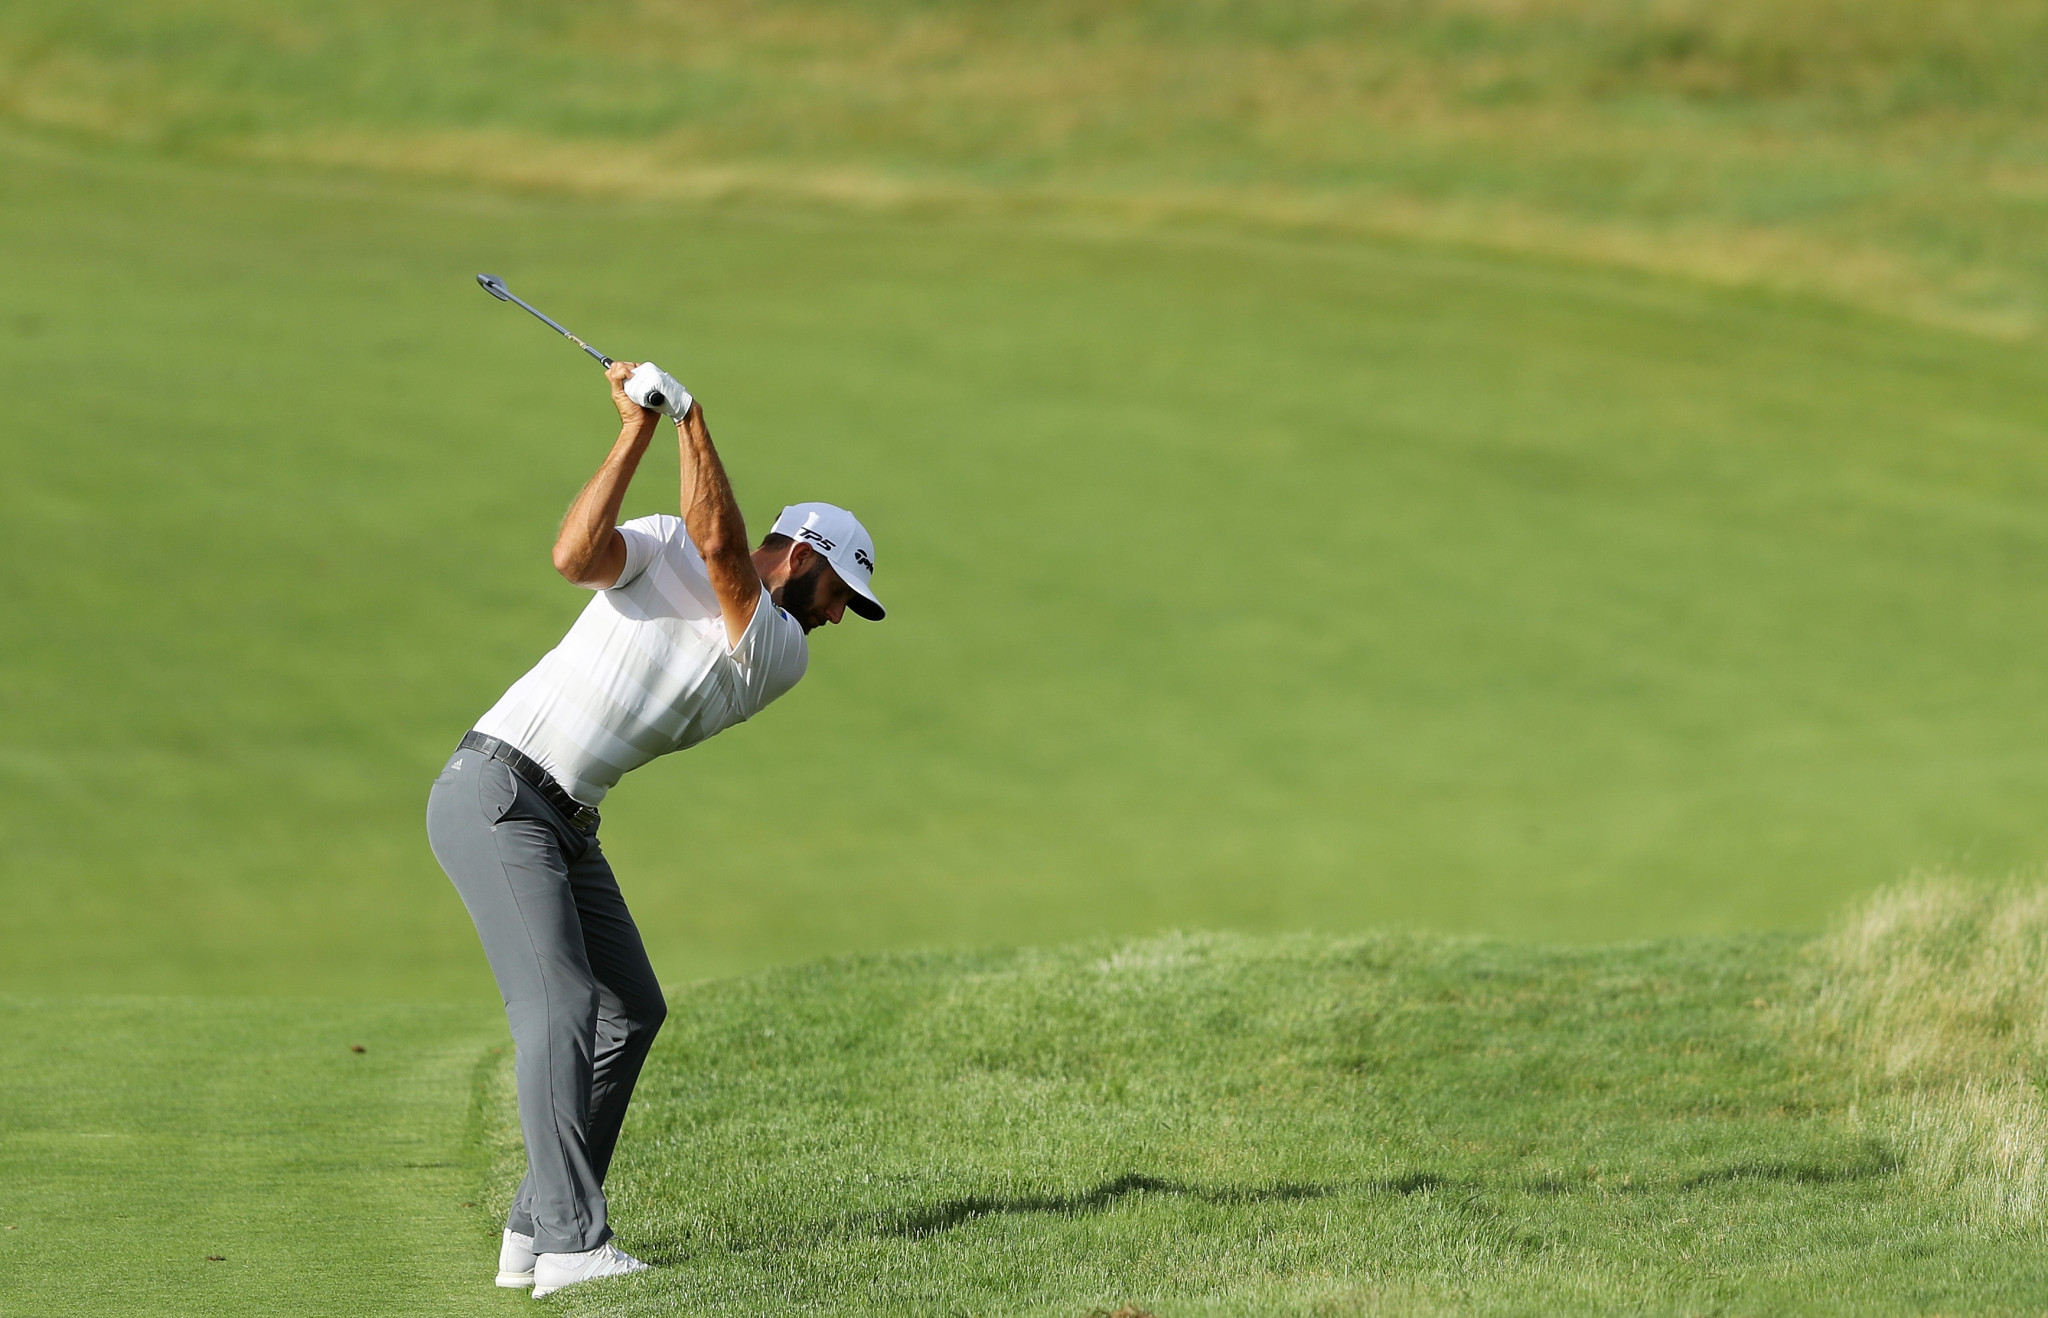 Dustin Johnson shares the lead after the first round of the US Open ©Getty Images